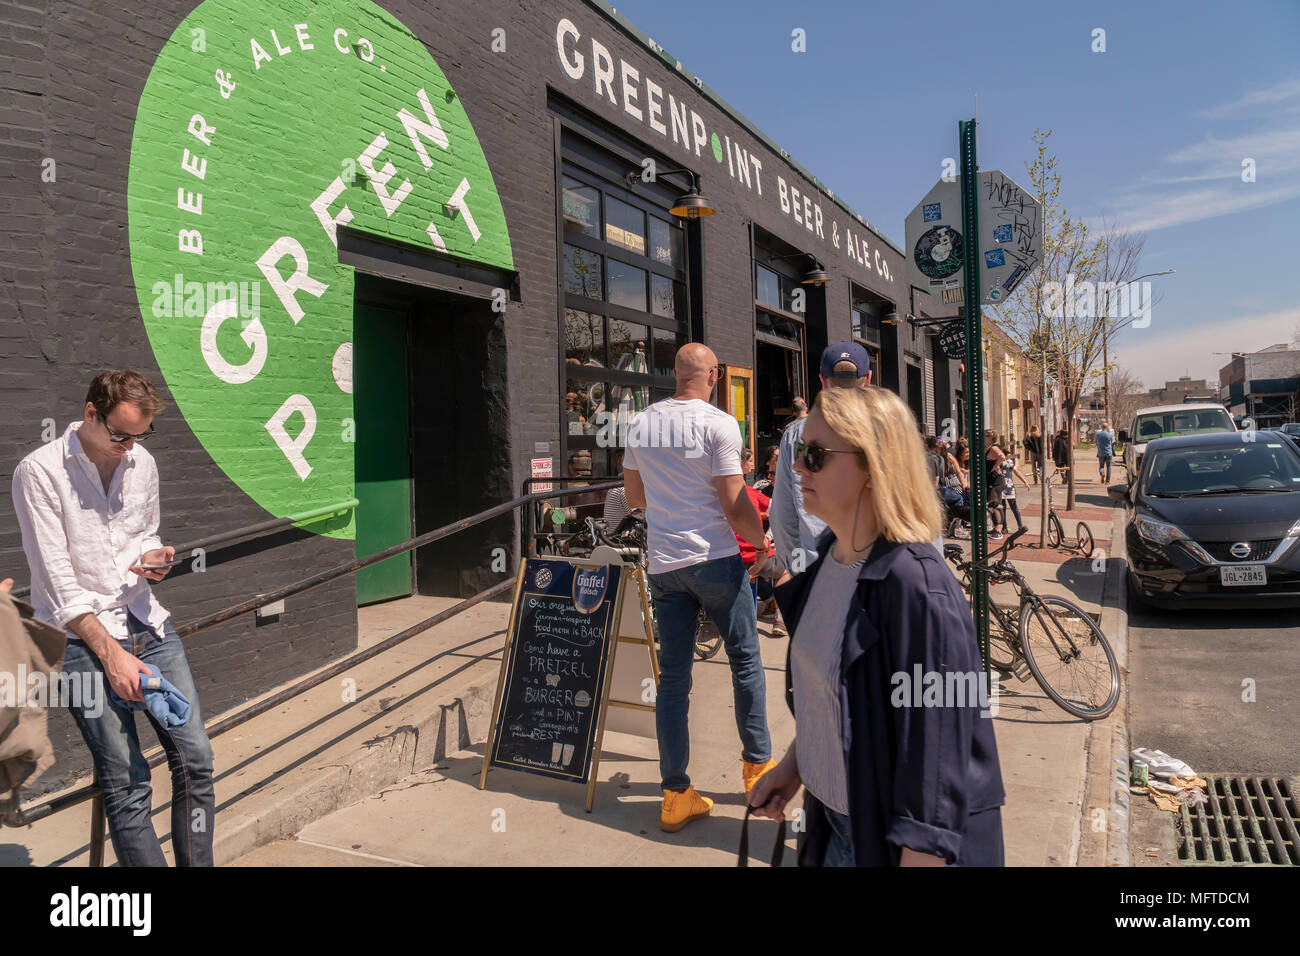 Al fresco dining at the Greenpoint Beer & Ale Co. in the Greenpoint neighborhood of Brooklyn on Sunday, April 22, 2018.   Zoning changes in 2005 promoted residential development in areas previously designated industrial.(© Richard B. Levine) - Stock Image